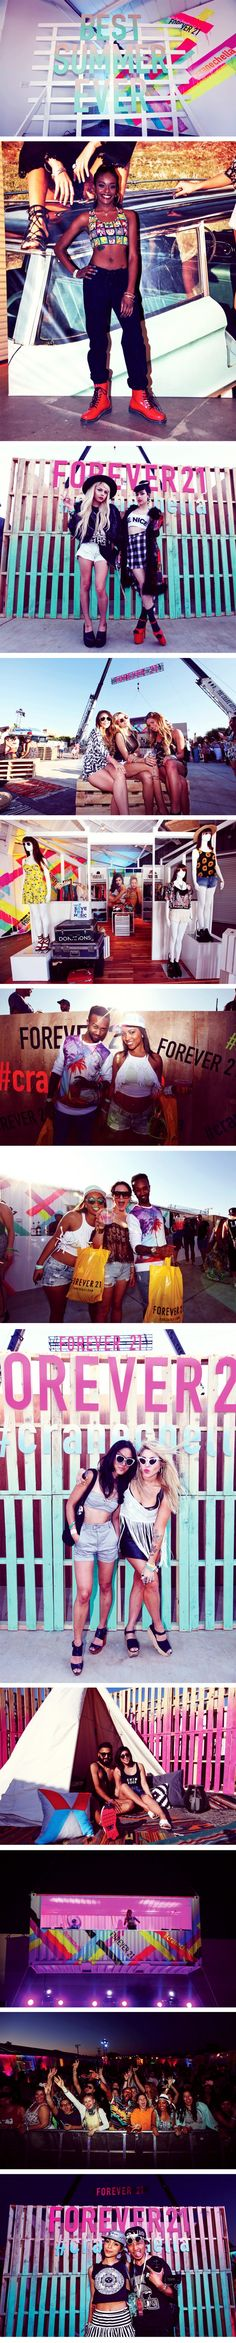 If you weren't in Palm Springs this weekend, check out the #F21Blog for a #Cranechella recap! #ForeverFest